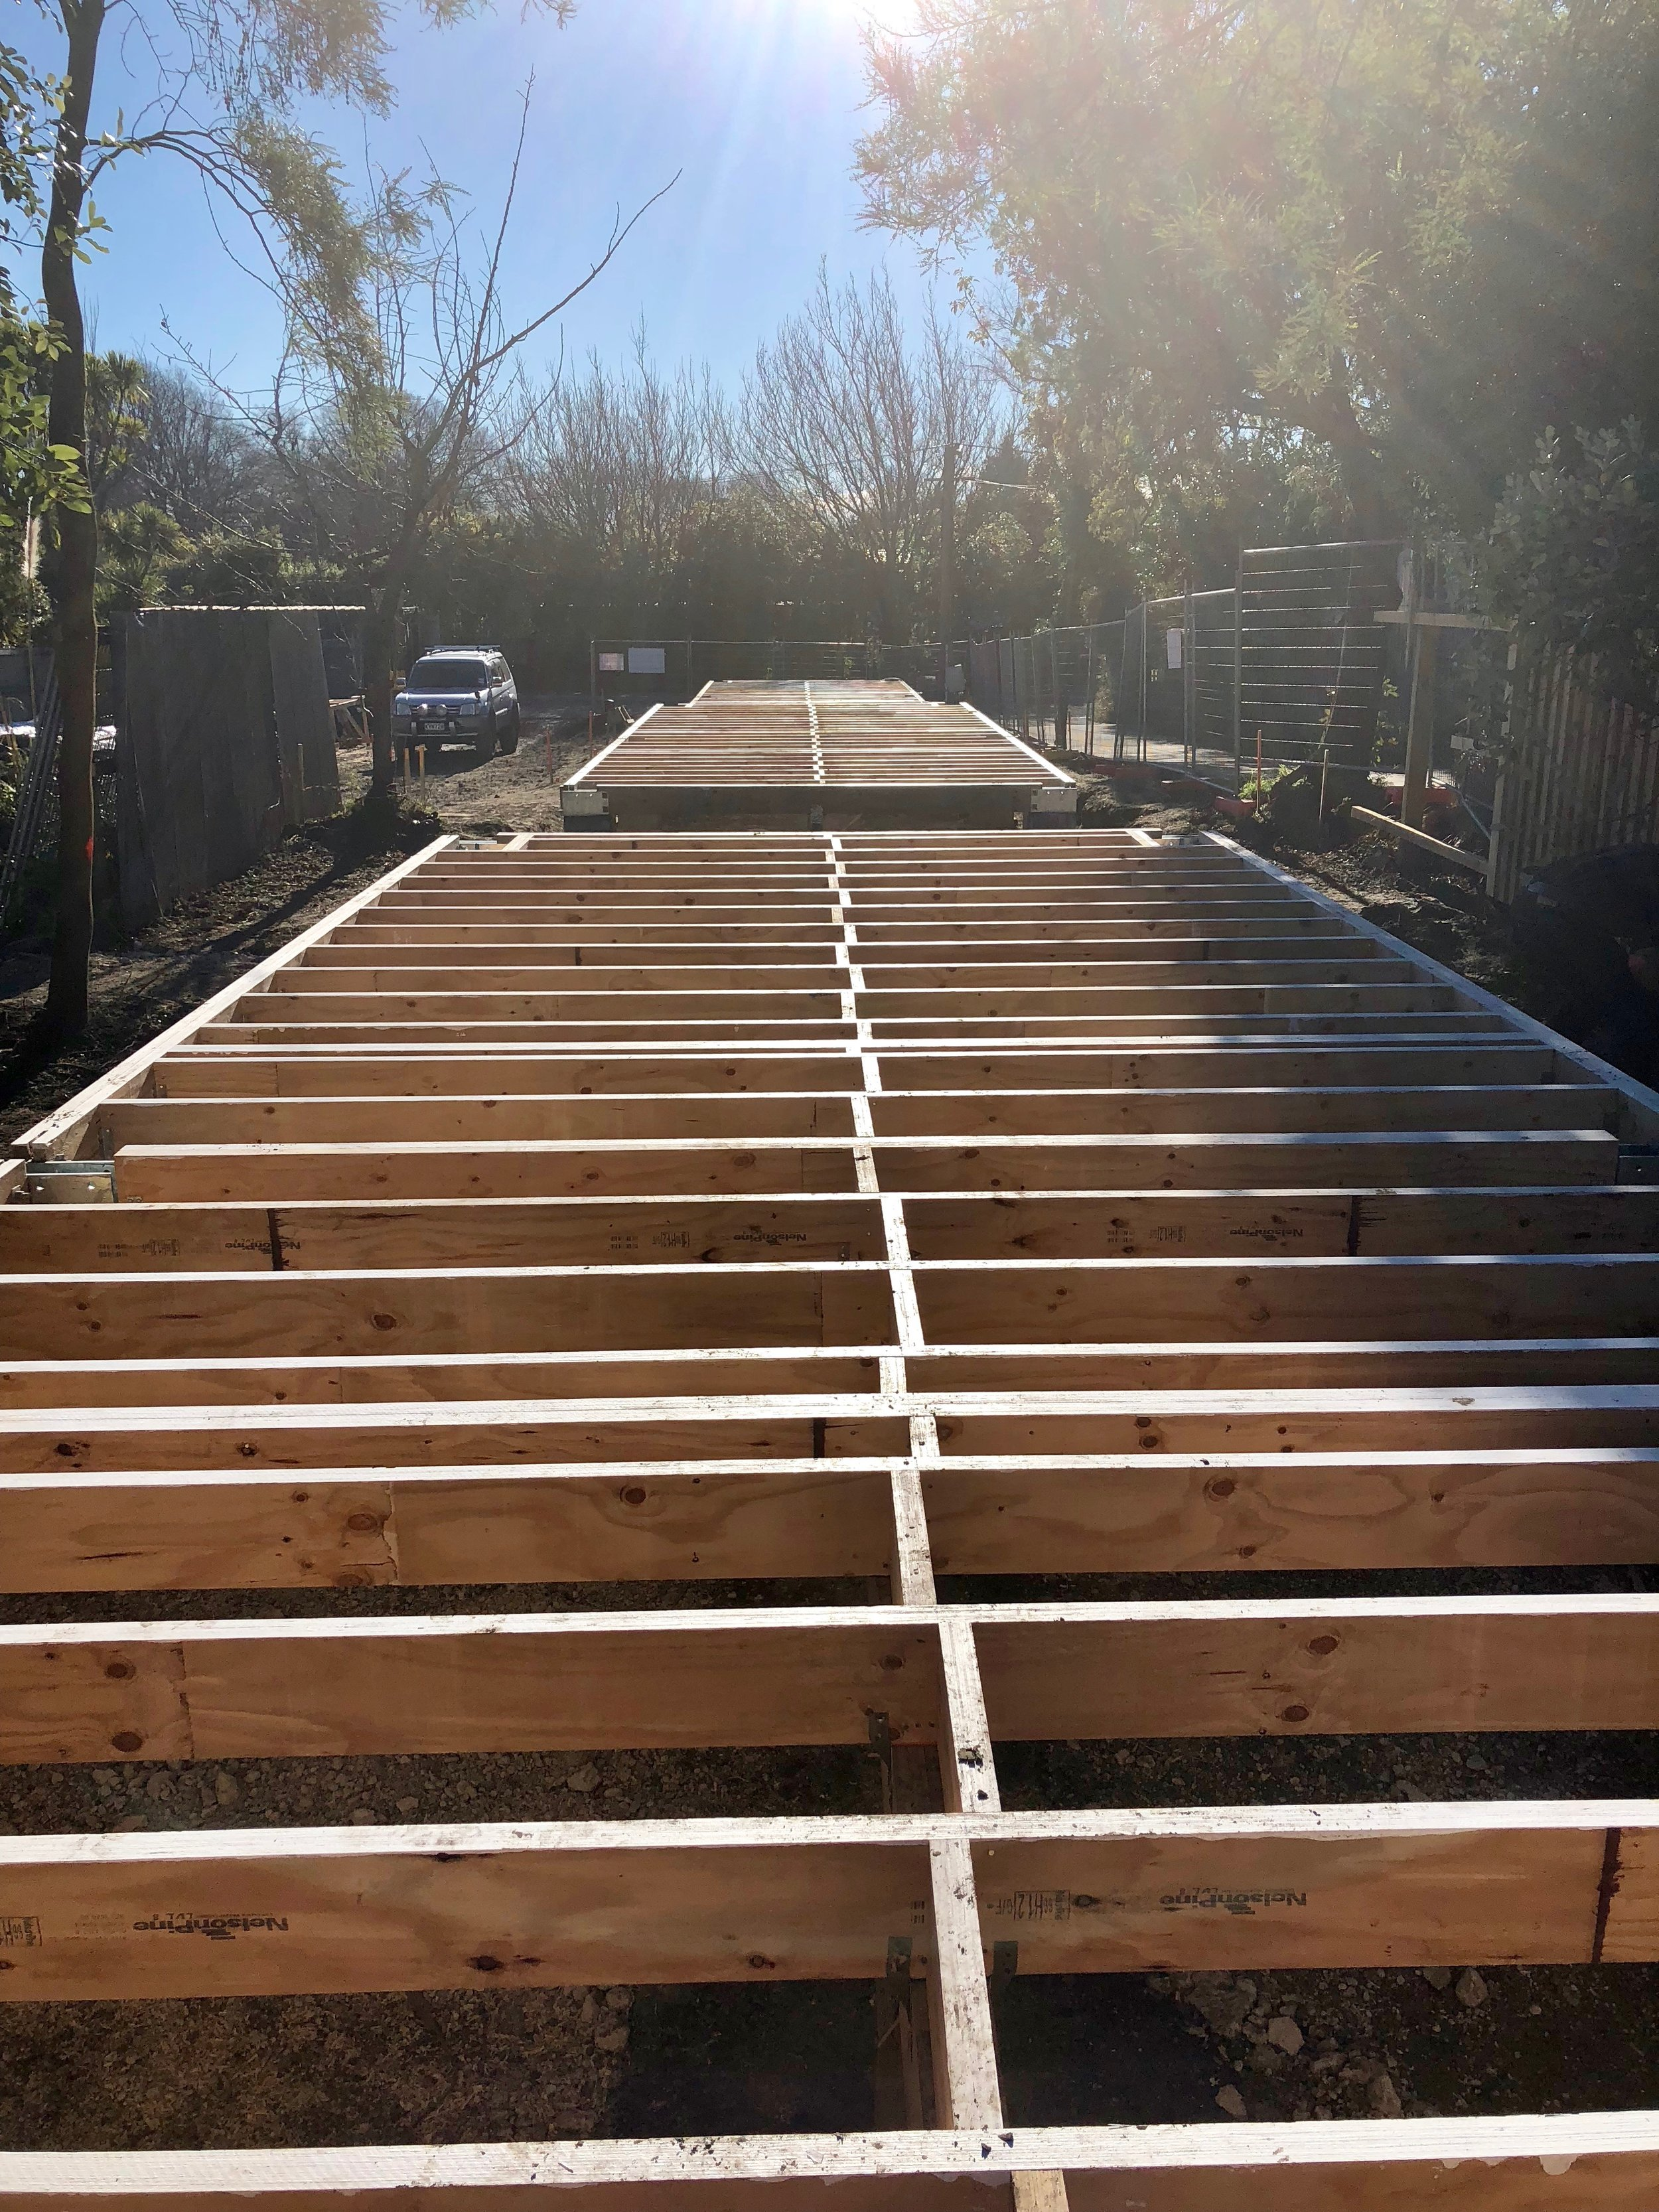 Floor joists finished ready to take our flooring. As you can see our site is very narrow with no room for Cars! The adjacent driveway is not our land.